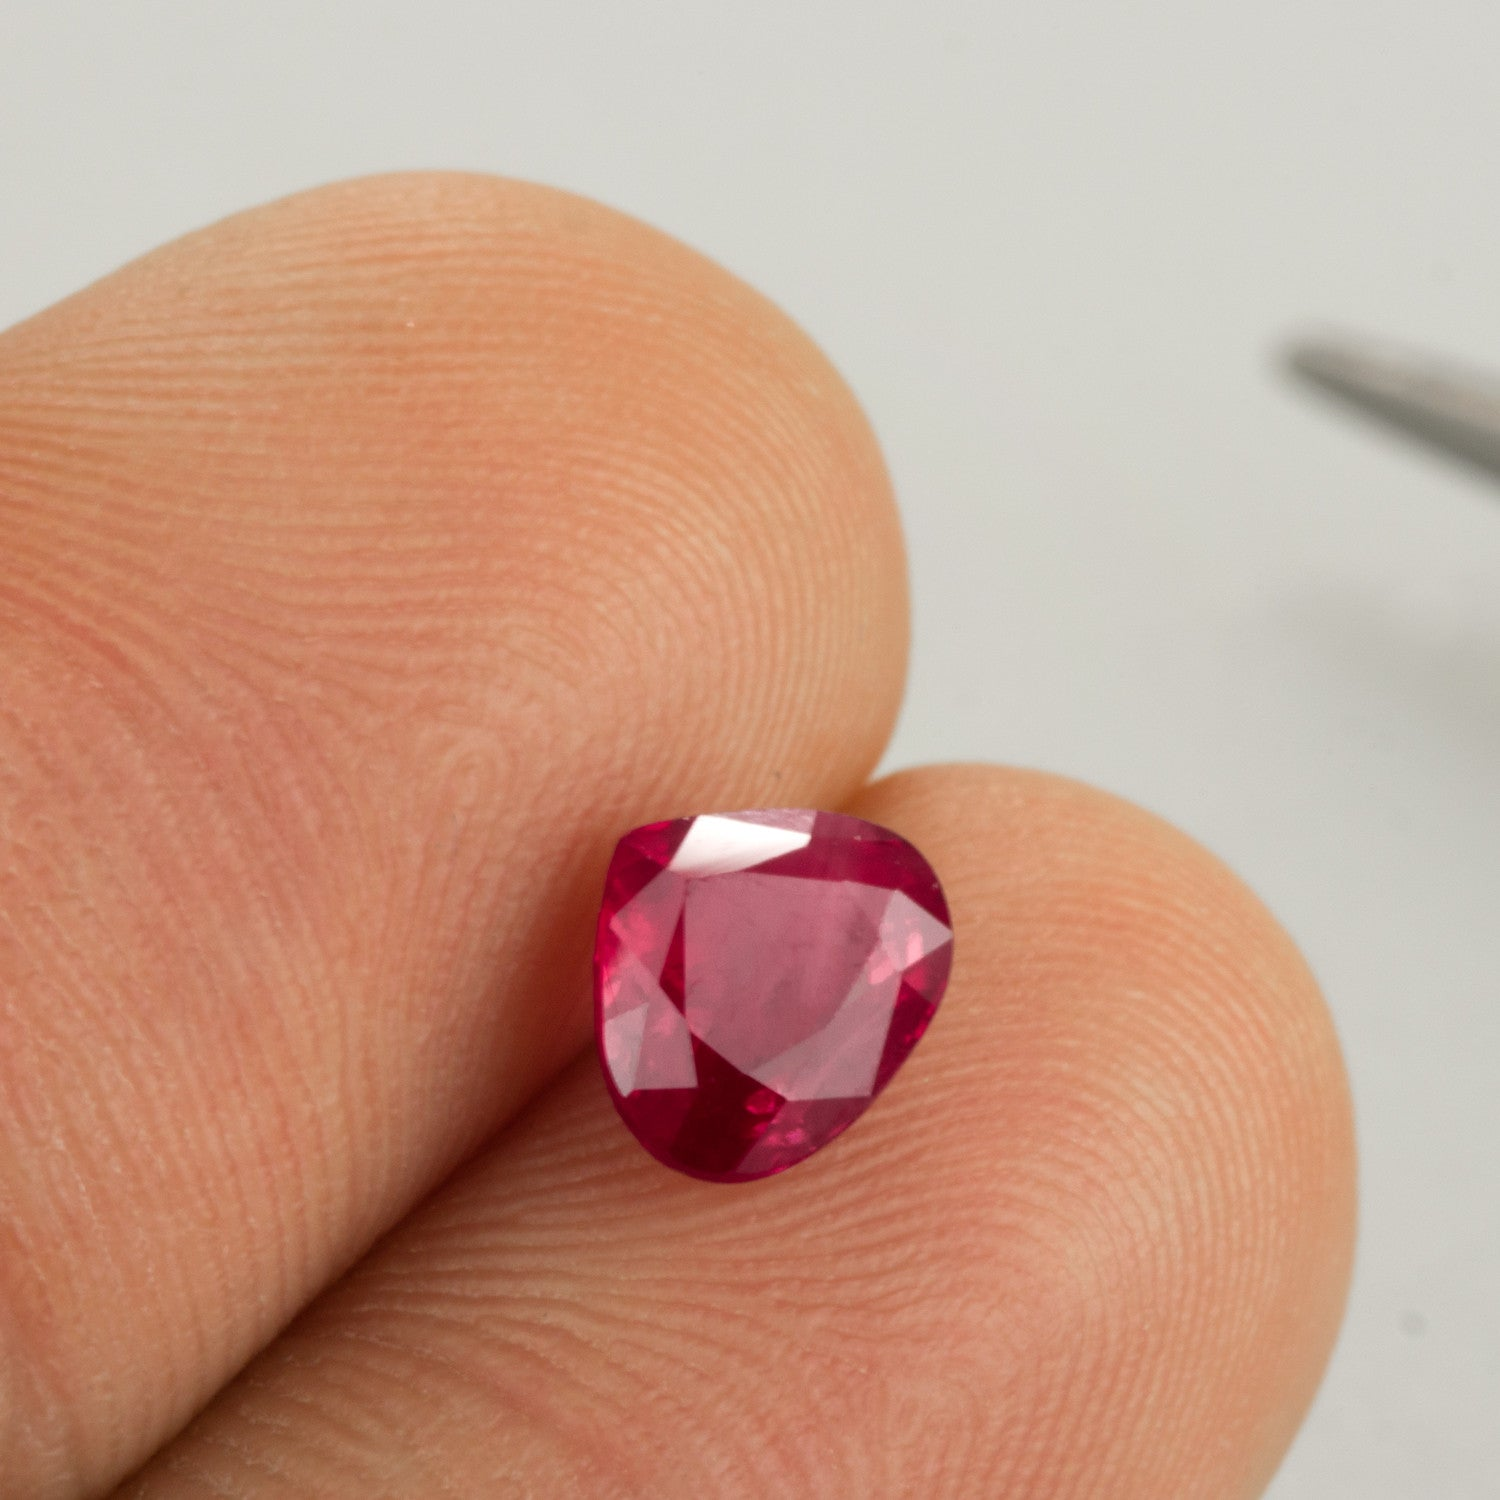 1.20ct Ruby Pear Cut, natural unheated ruby, ruby birthstone for July, Mozambique ruby